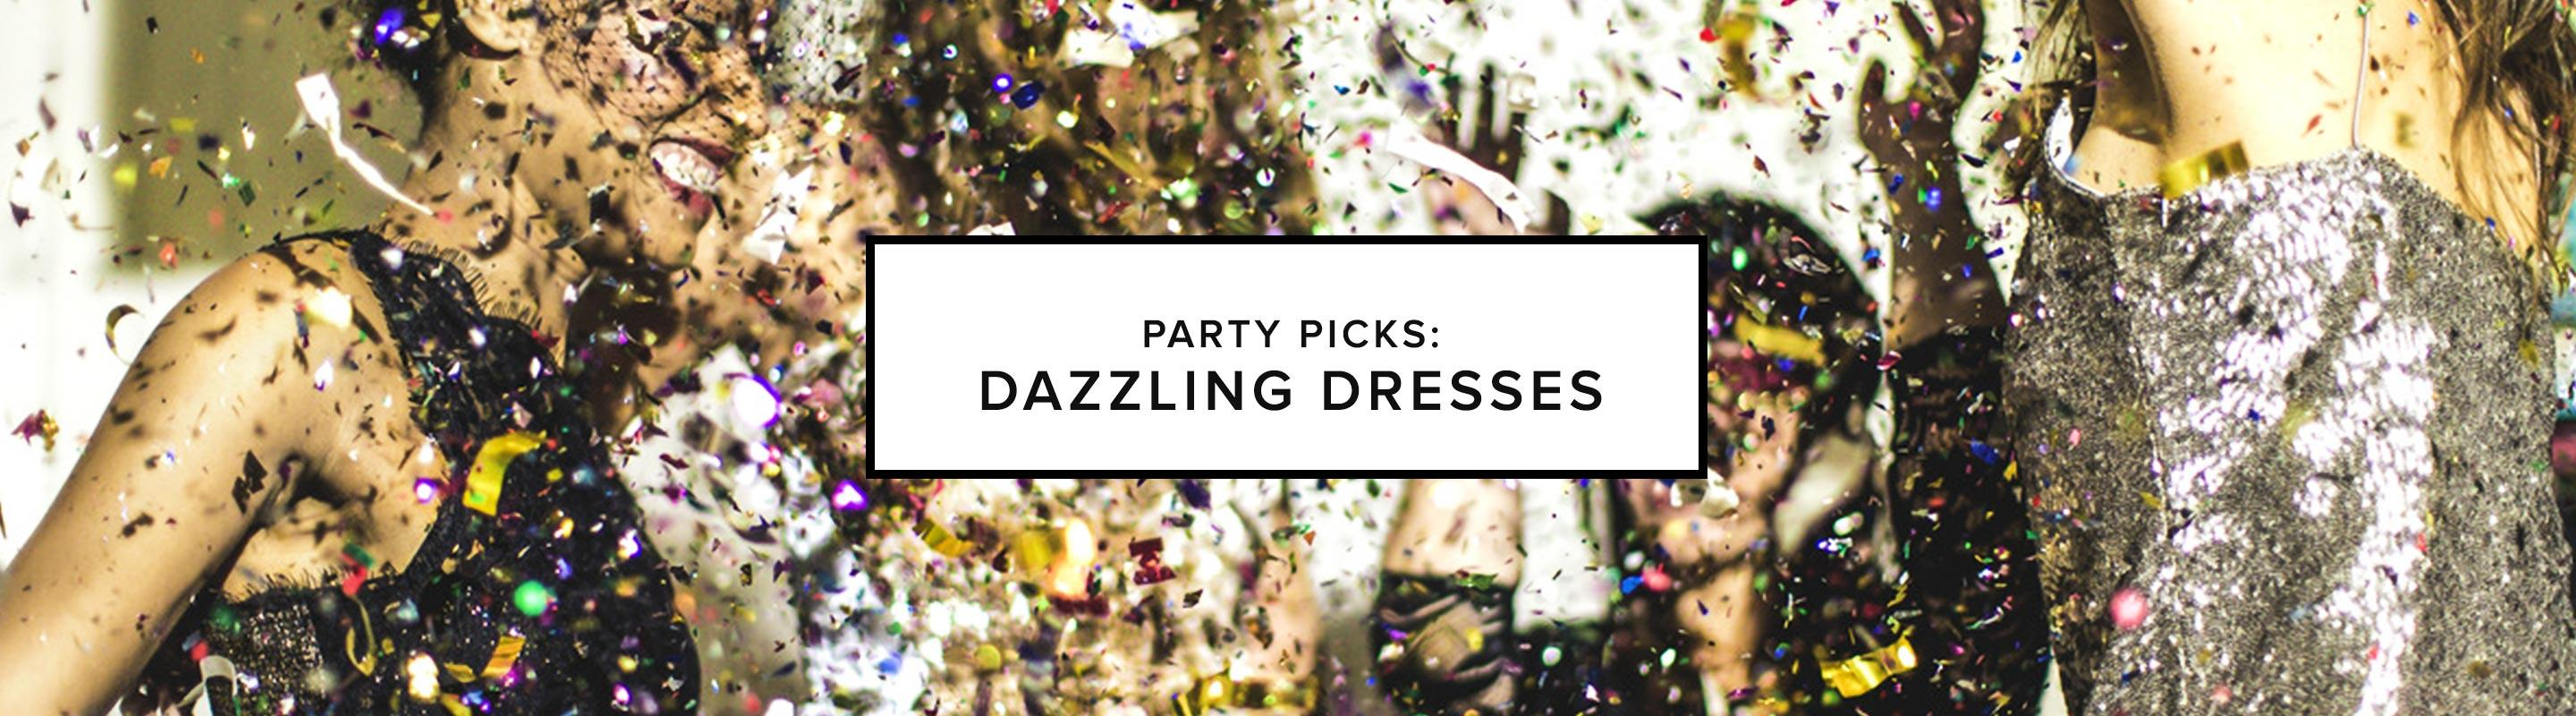 Party Picks: Dazzling Dresses